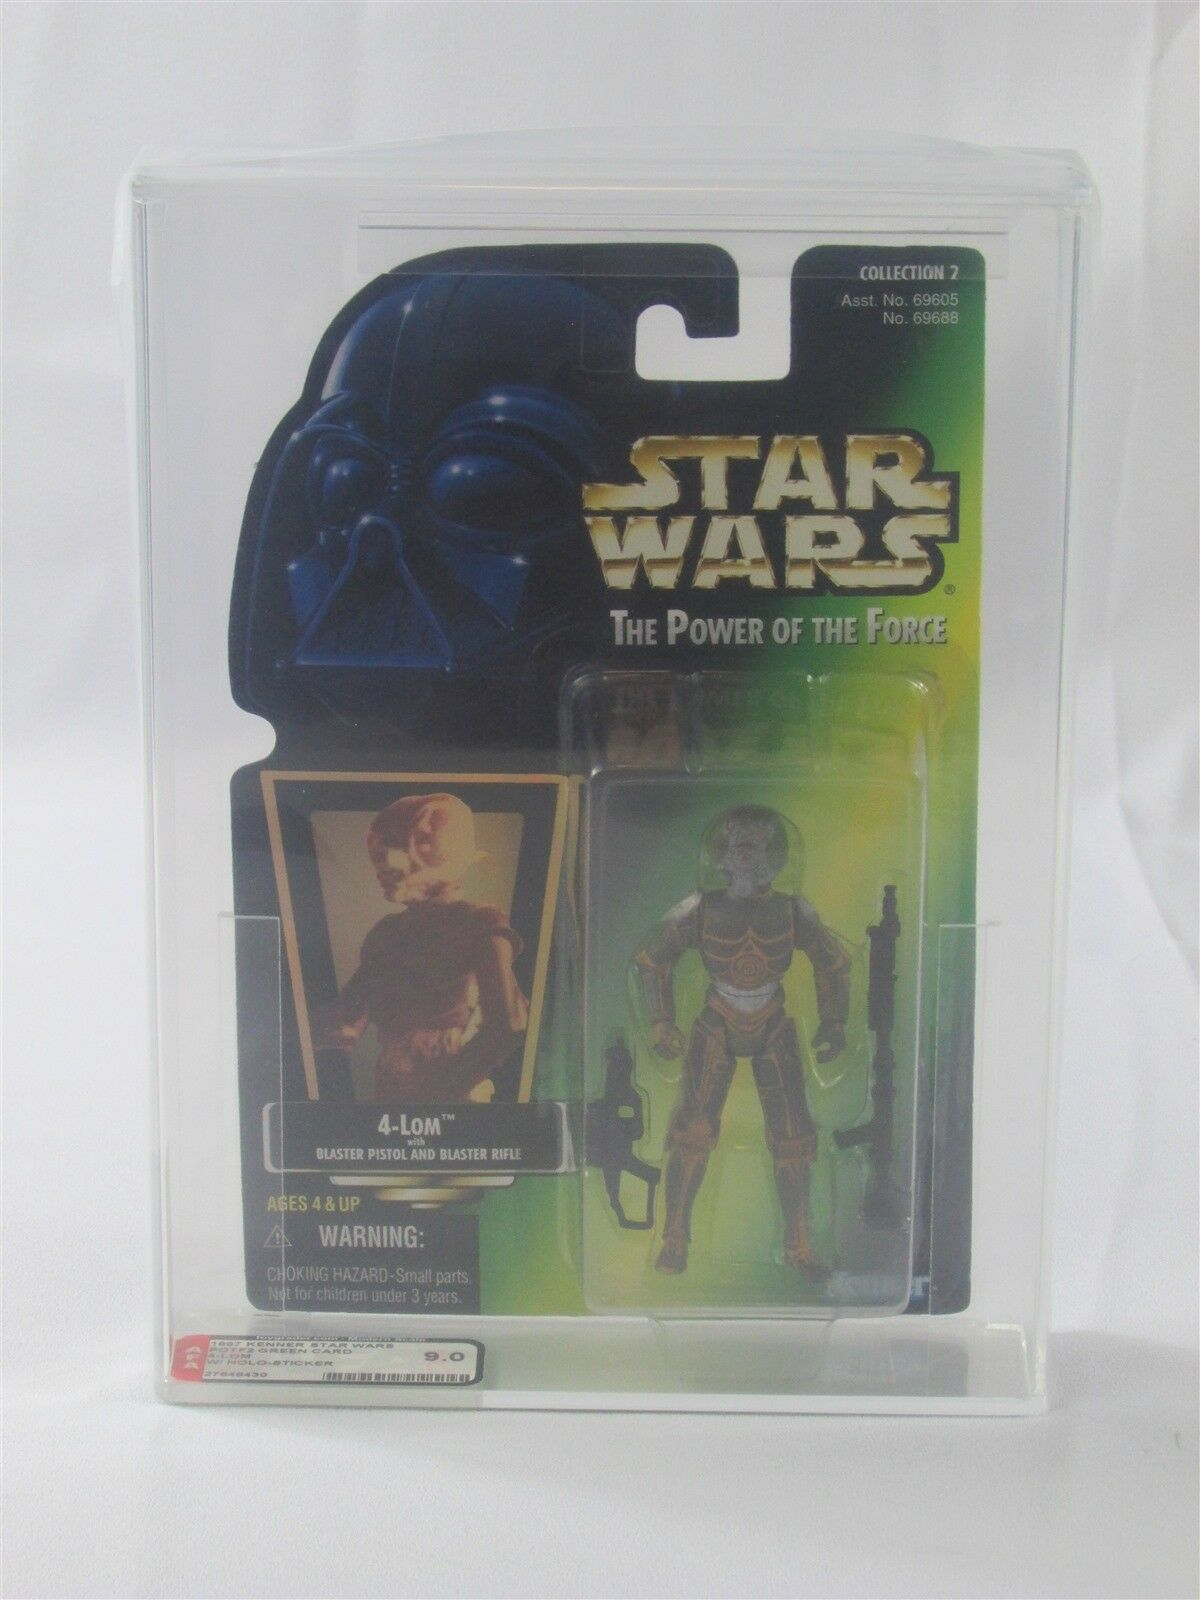 STAR WARS POTF2 4-LOM HOLOGRAM AFA 9.0 1997 KENNER HIGH GRADE